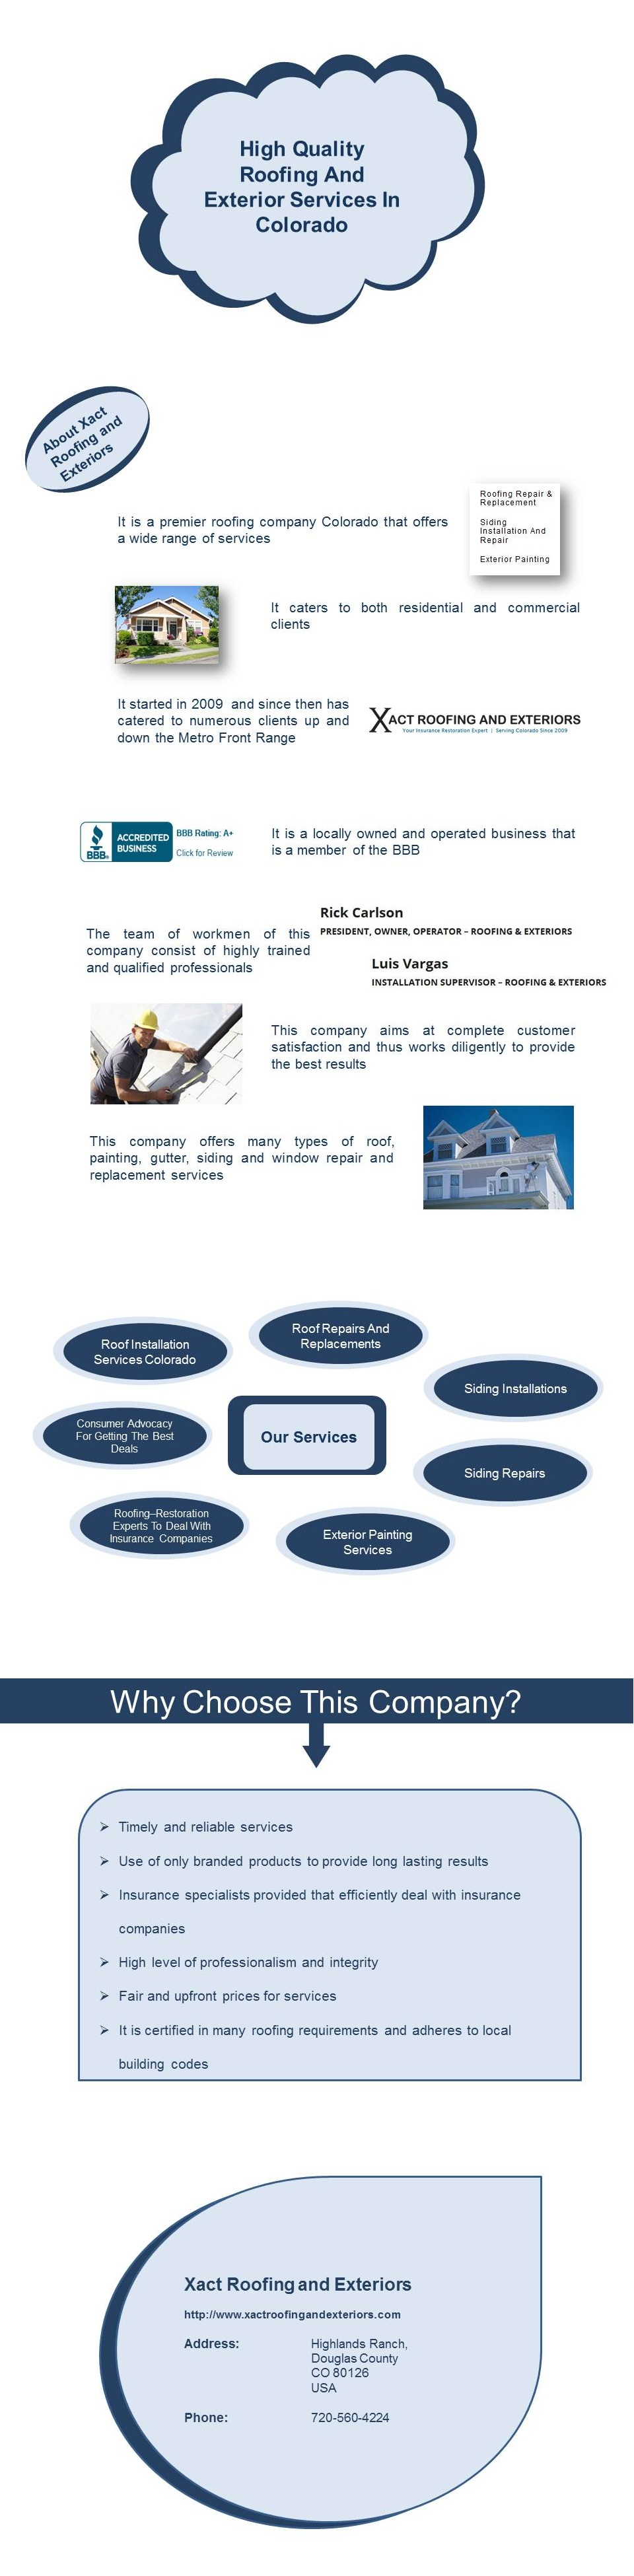 Xact Roofing And Exteriors Is A Premier Roofing Company Colorado That Offers A Wide Range Of Services It Started In 2 Roofing Window Repair Roofing Companies